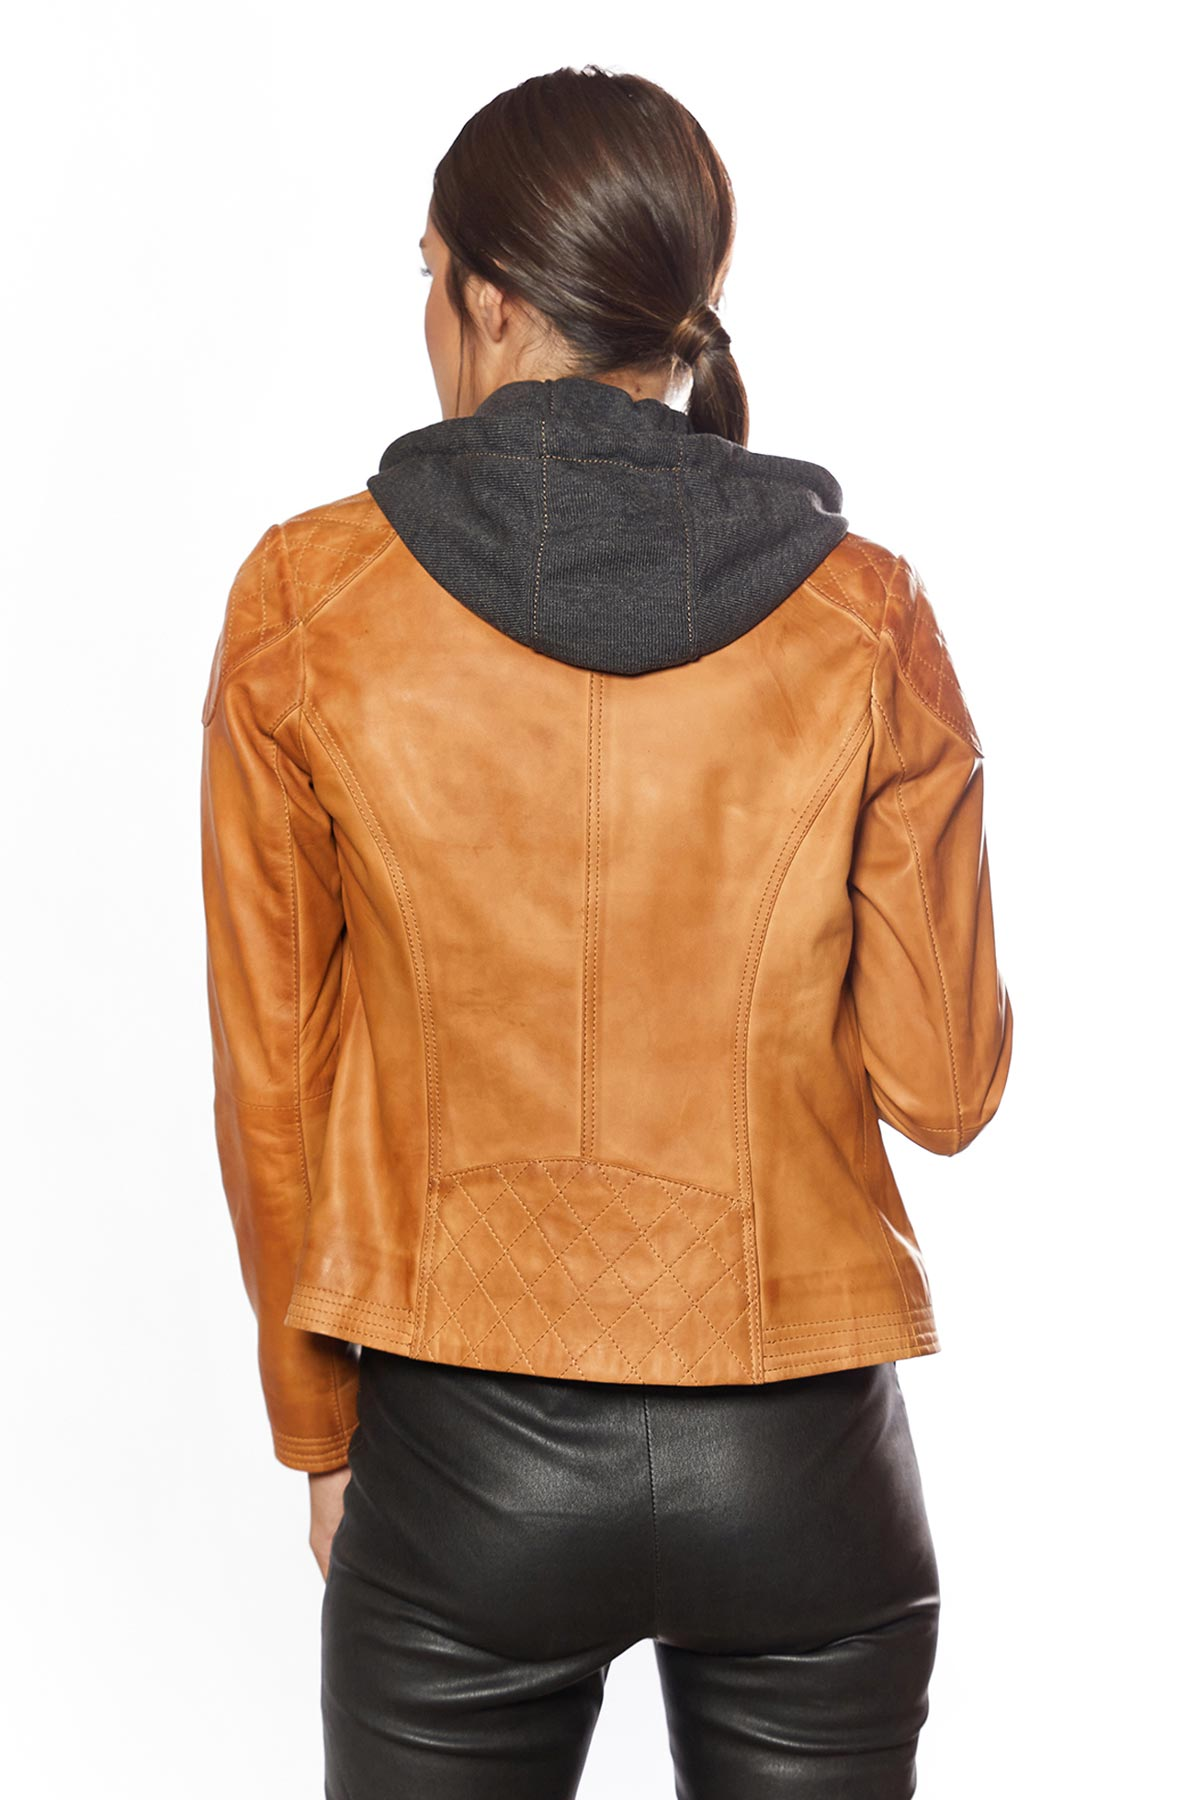 black or brown leather jacket womens